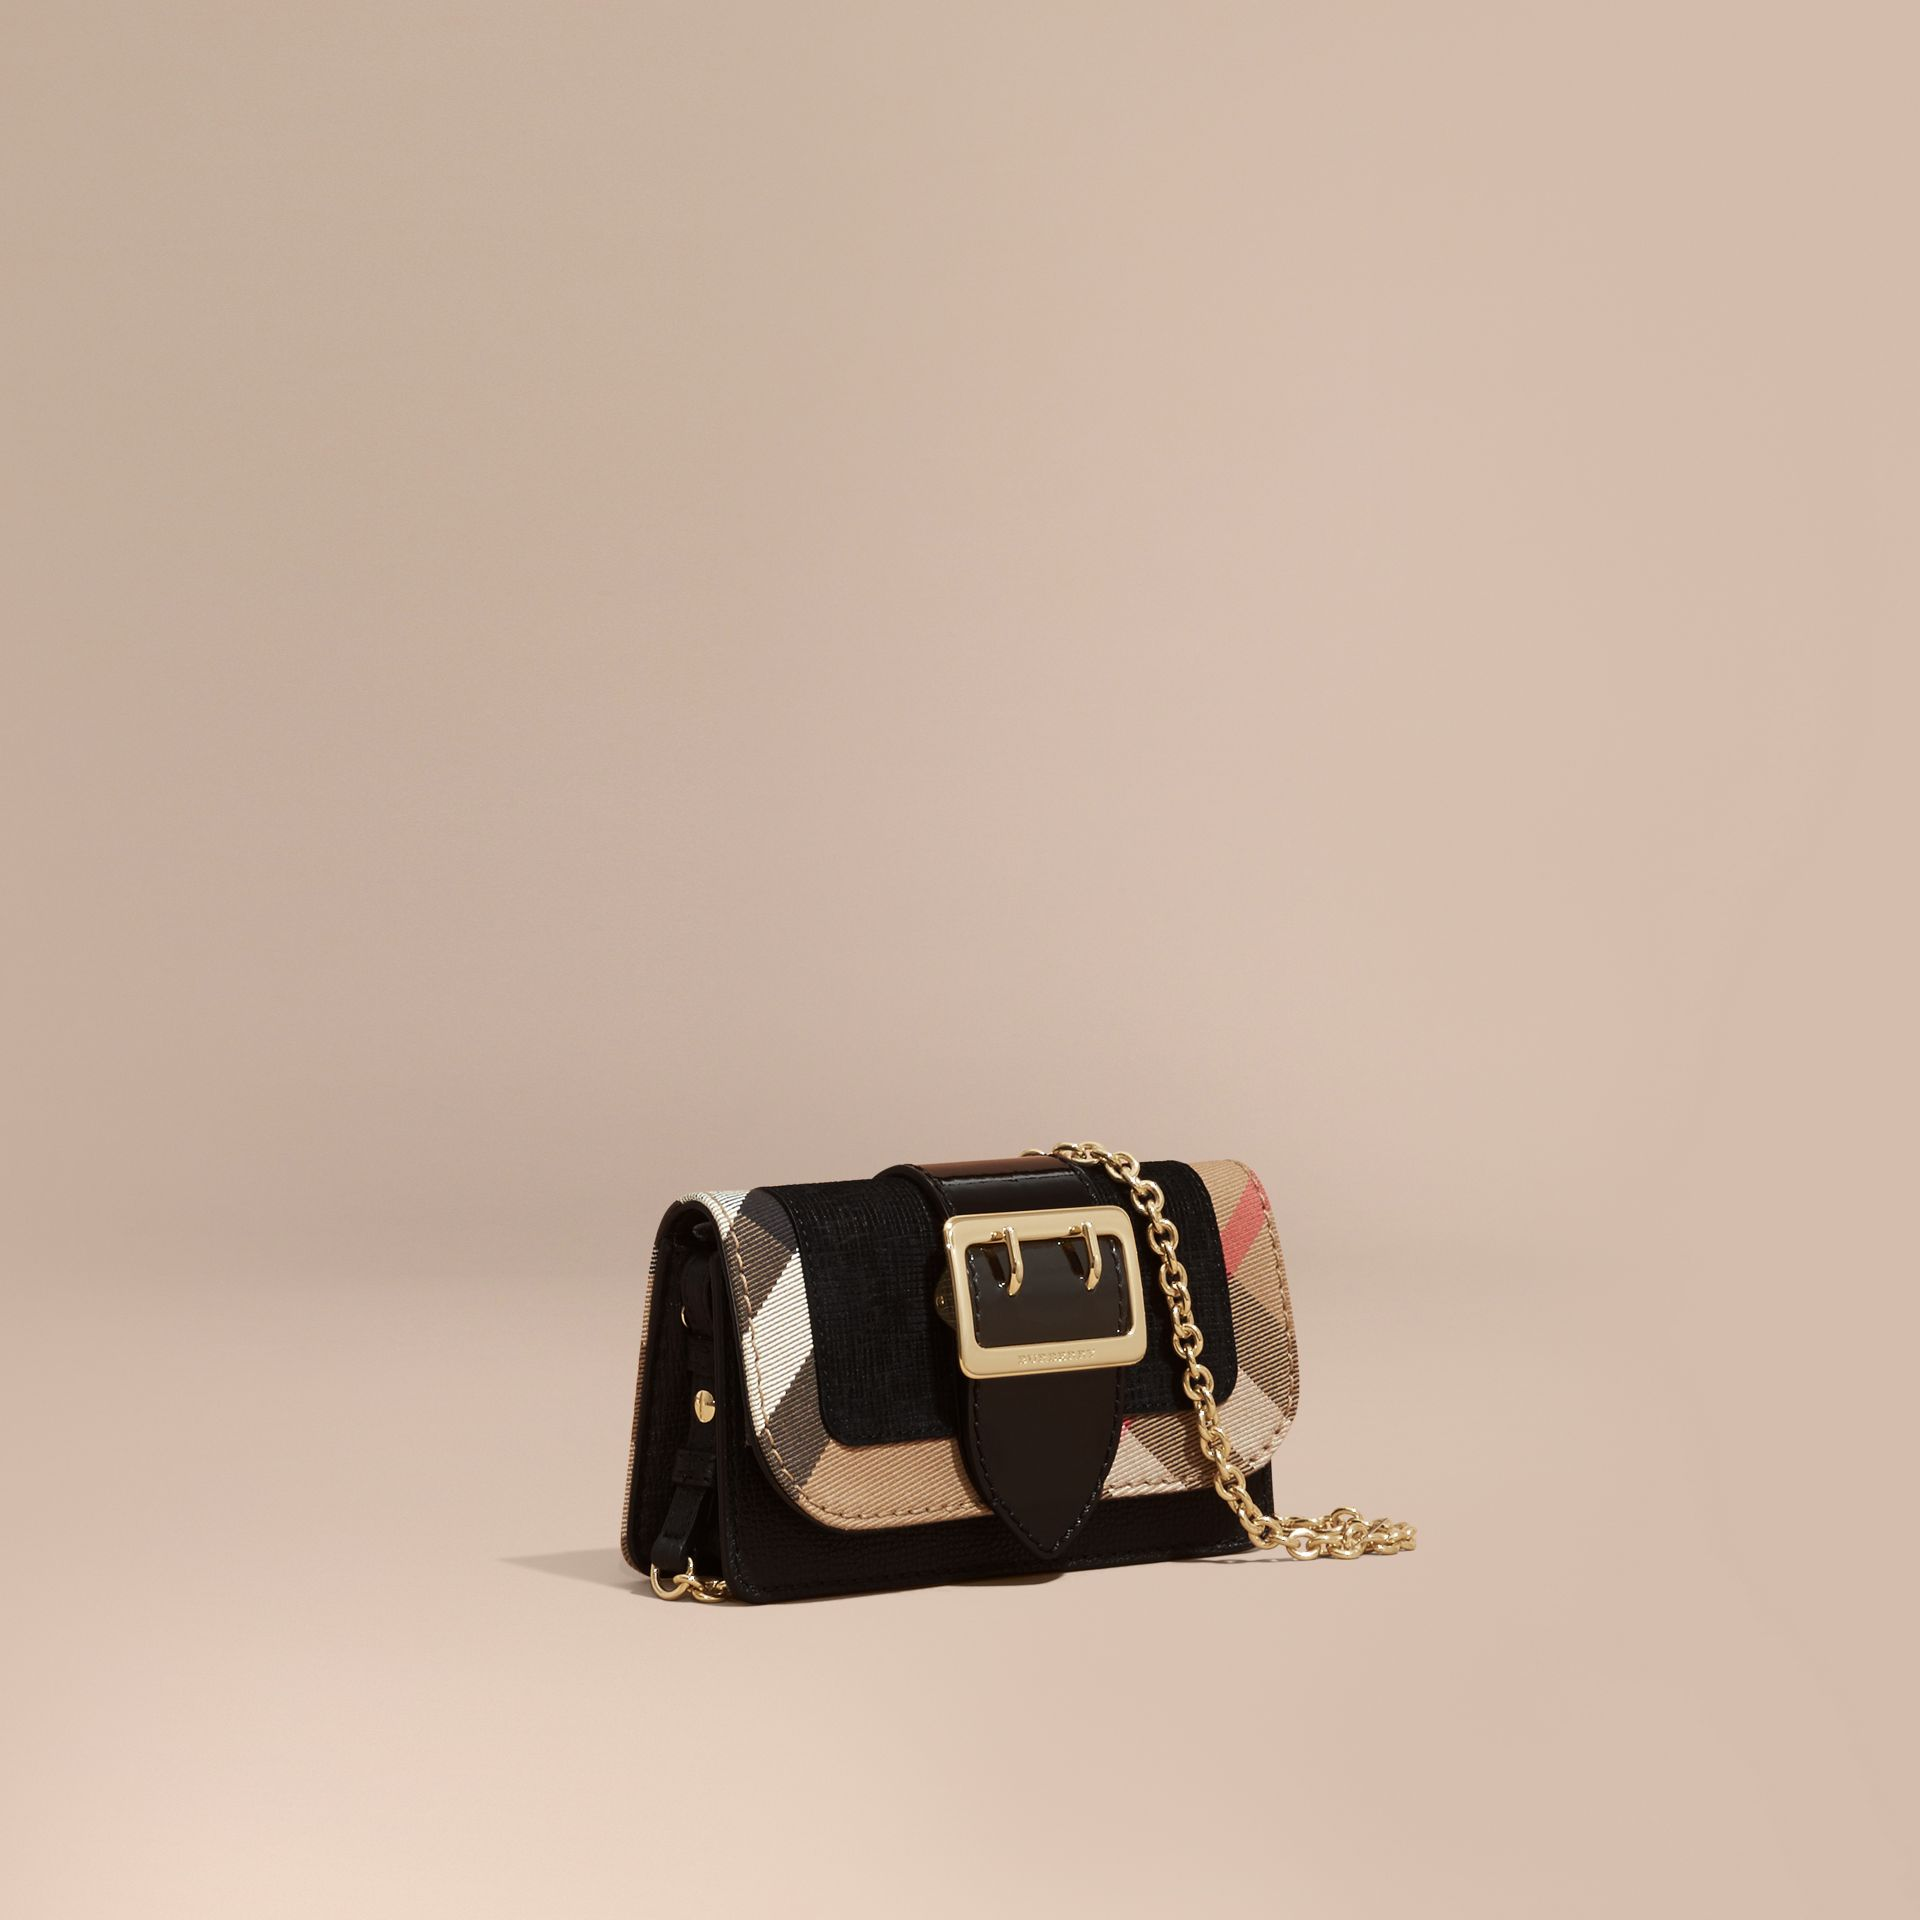 The Mini Buckle Bag in Leather and House Check Black - gallery image 1